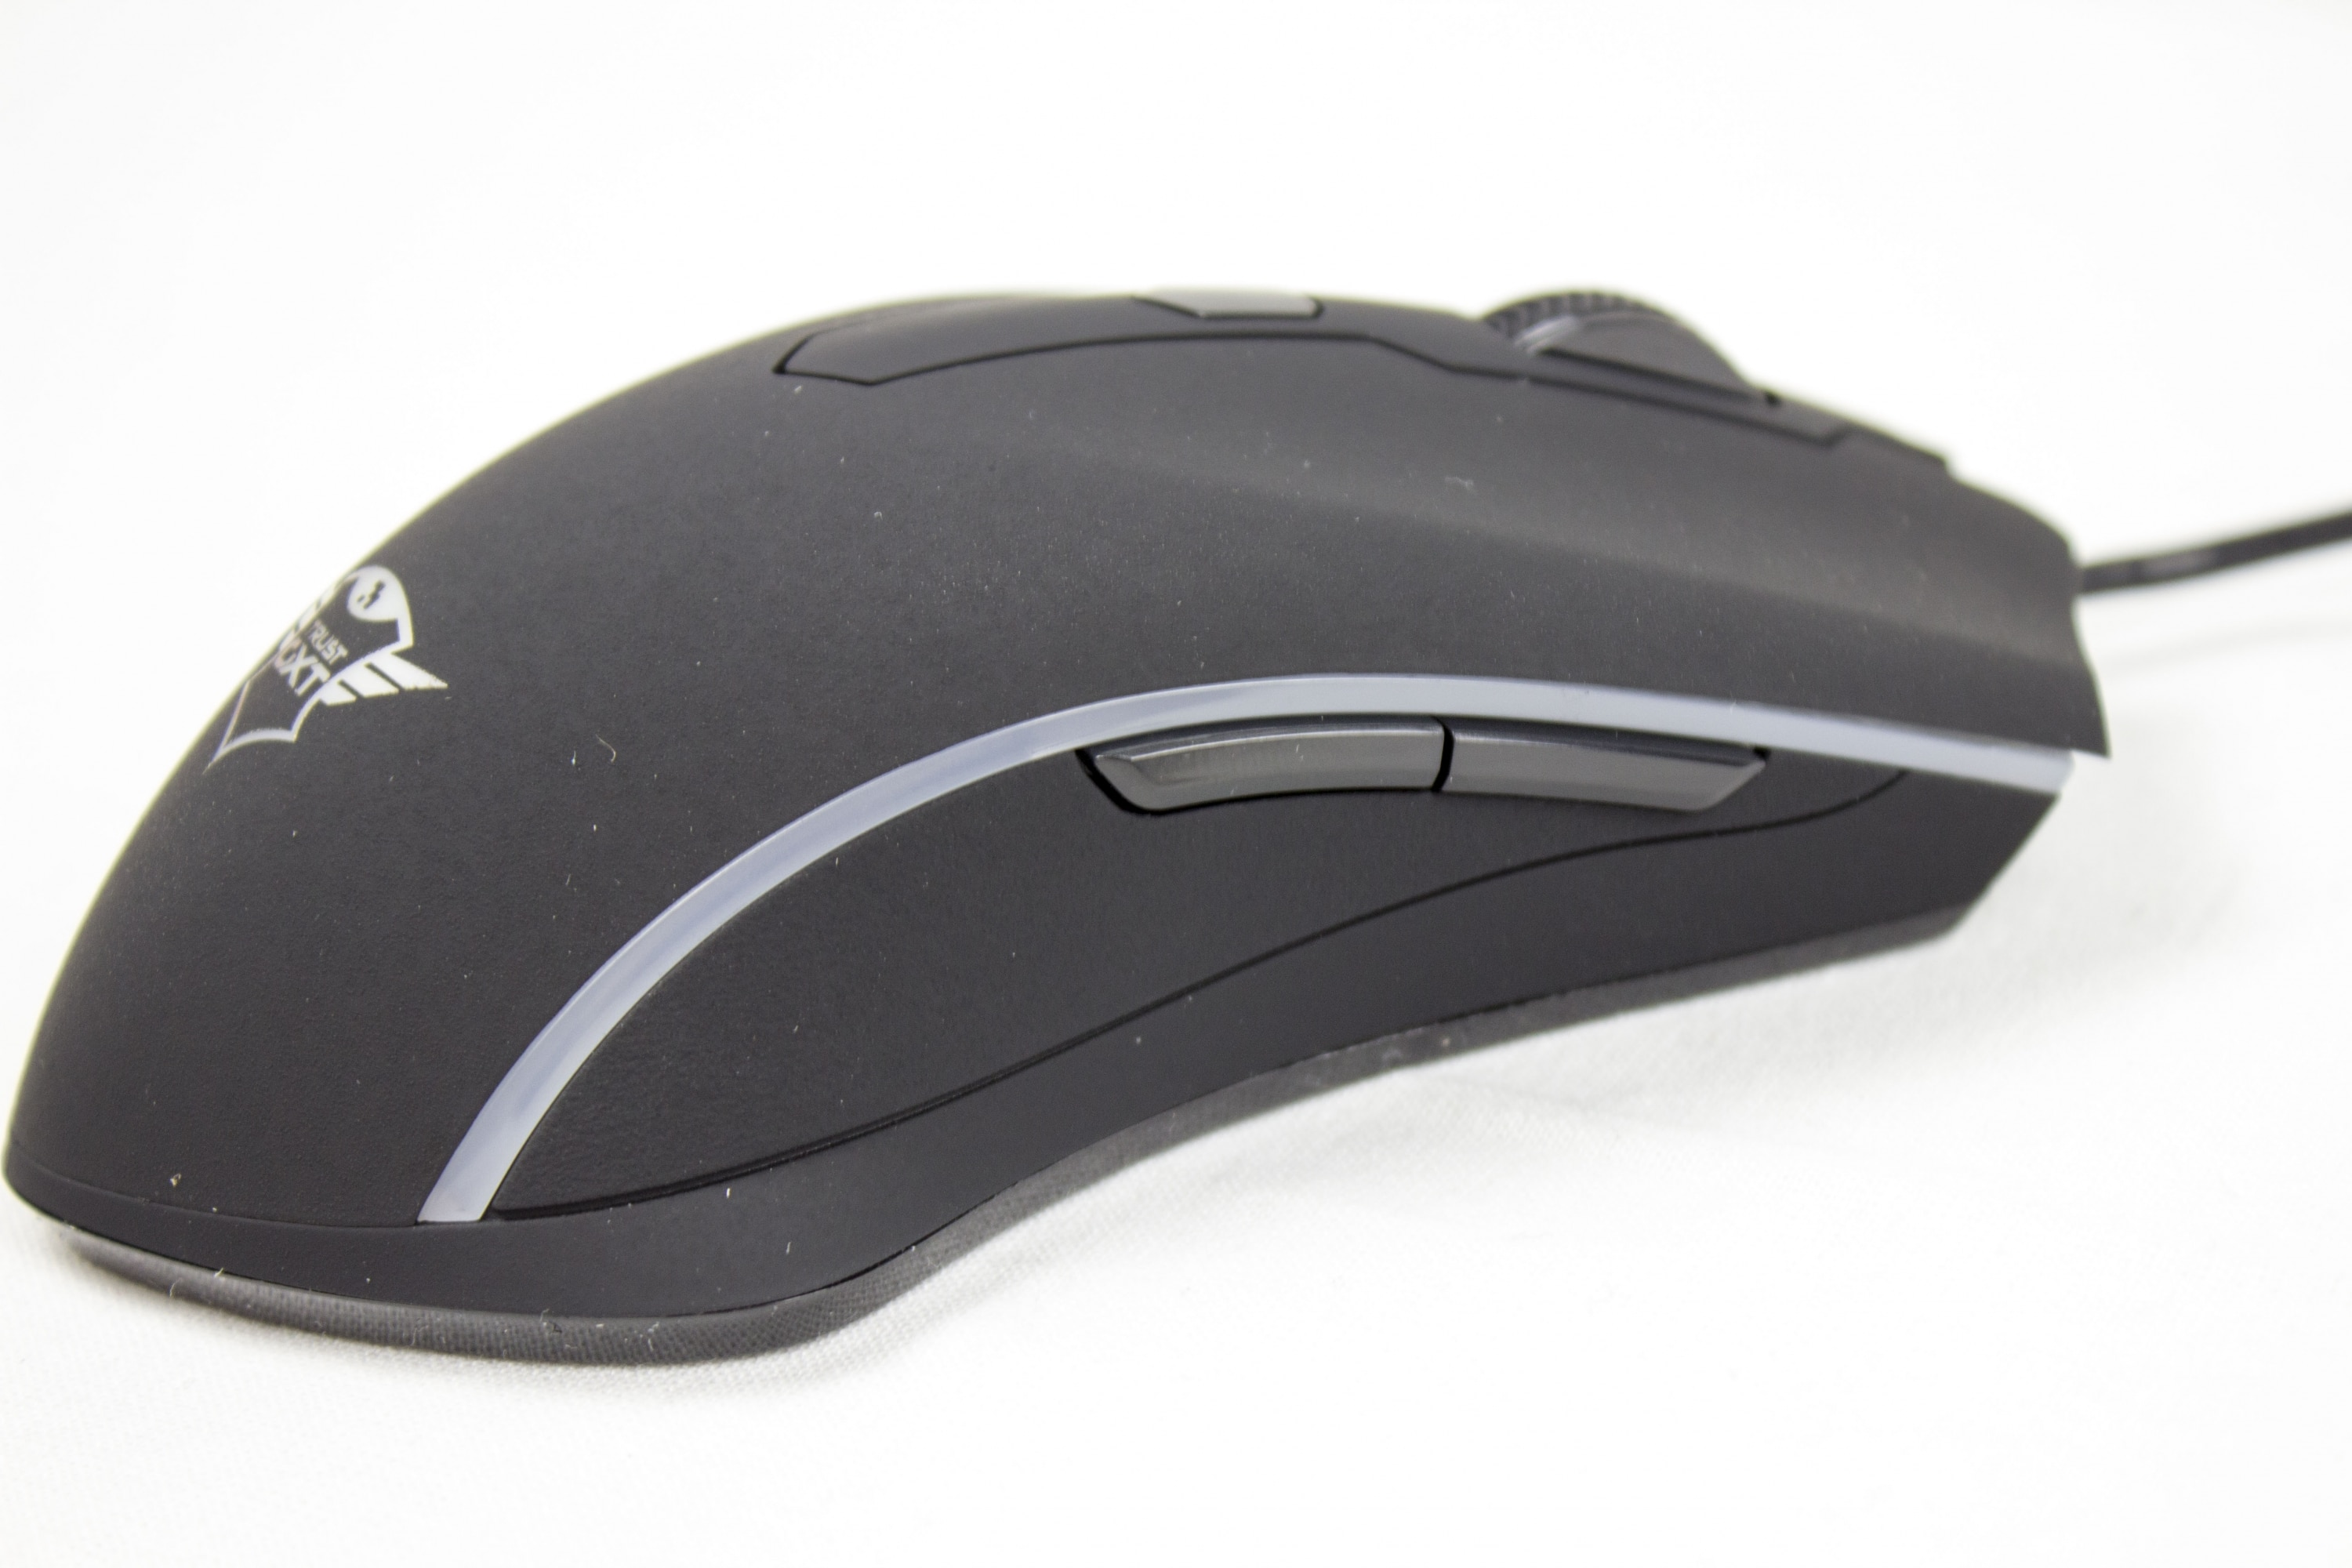 Photo of Trust GXT 177 Gaming-Maus im Test